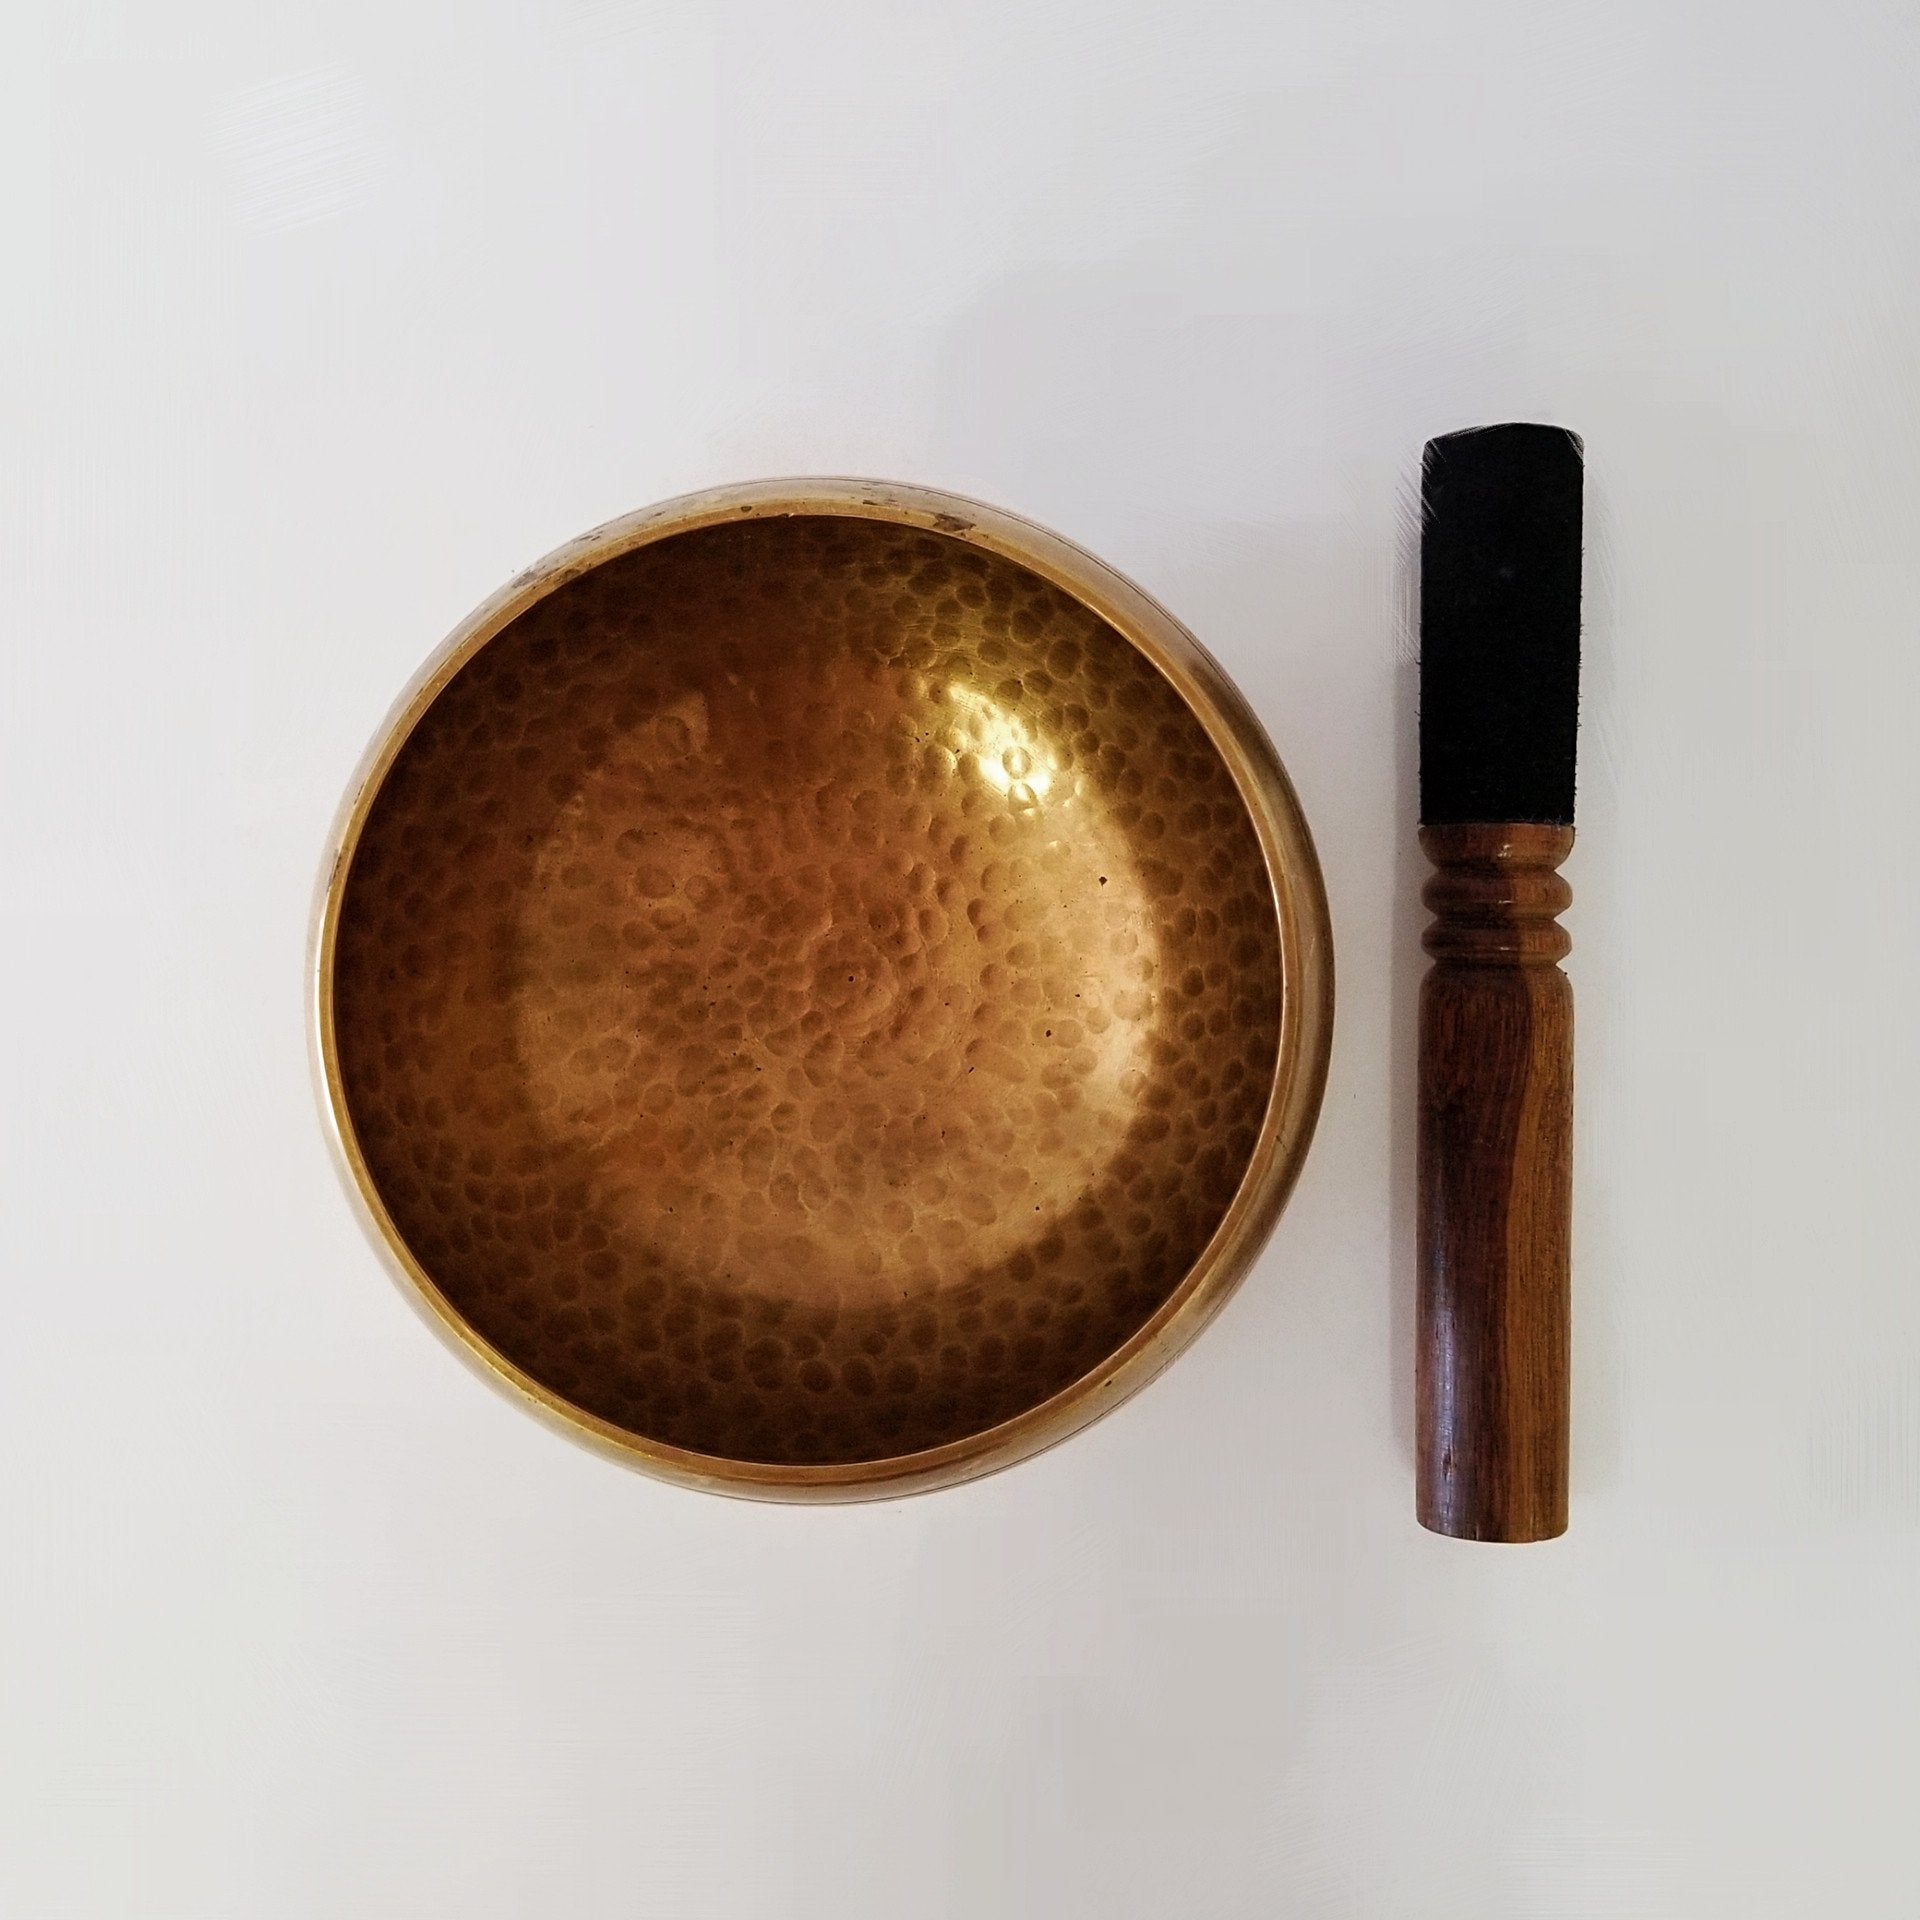 Singing Bowl | Meditation Tools | Hand Hammered Singing Bowl